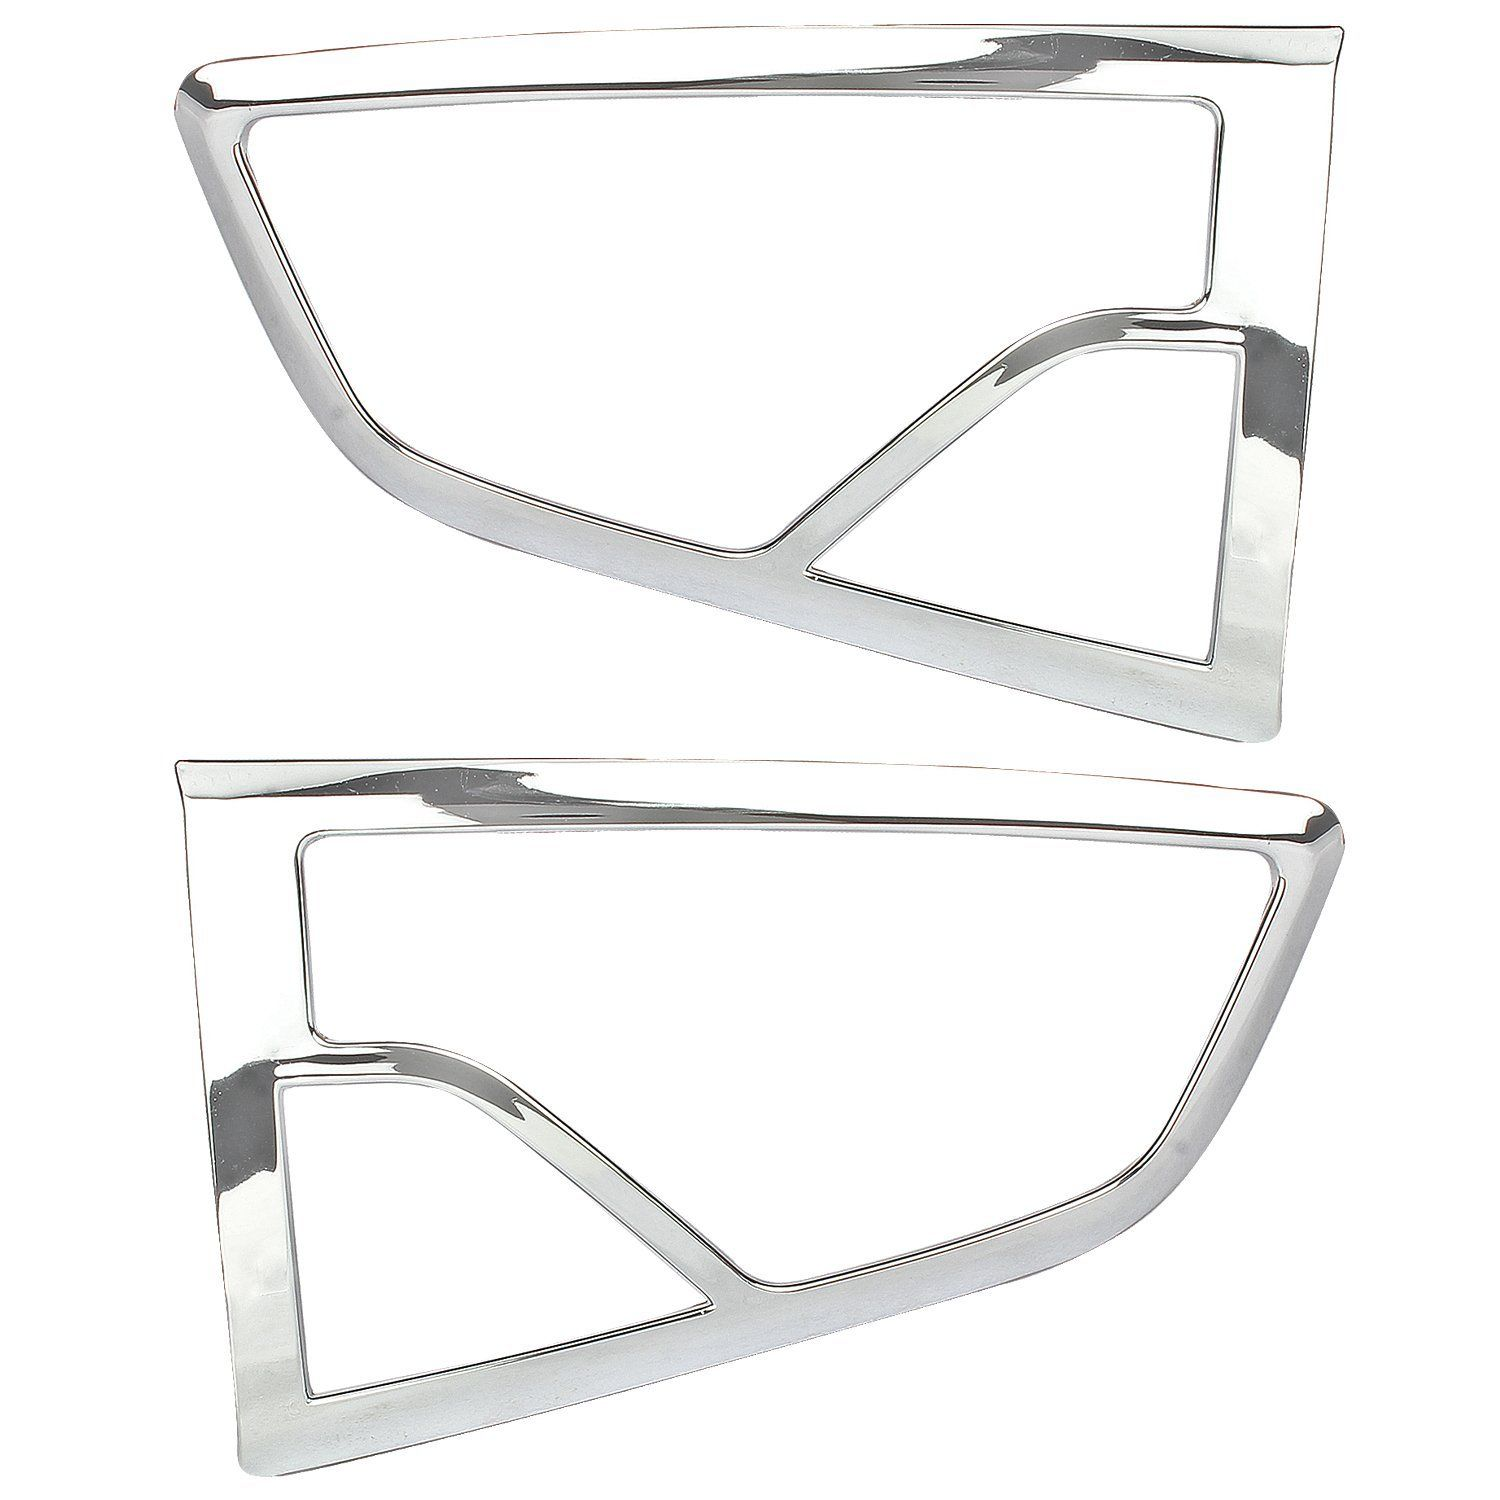 TAIL LAMP MOULDINGS FOR FORD ECOSPORT (SET OF 2PCS)